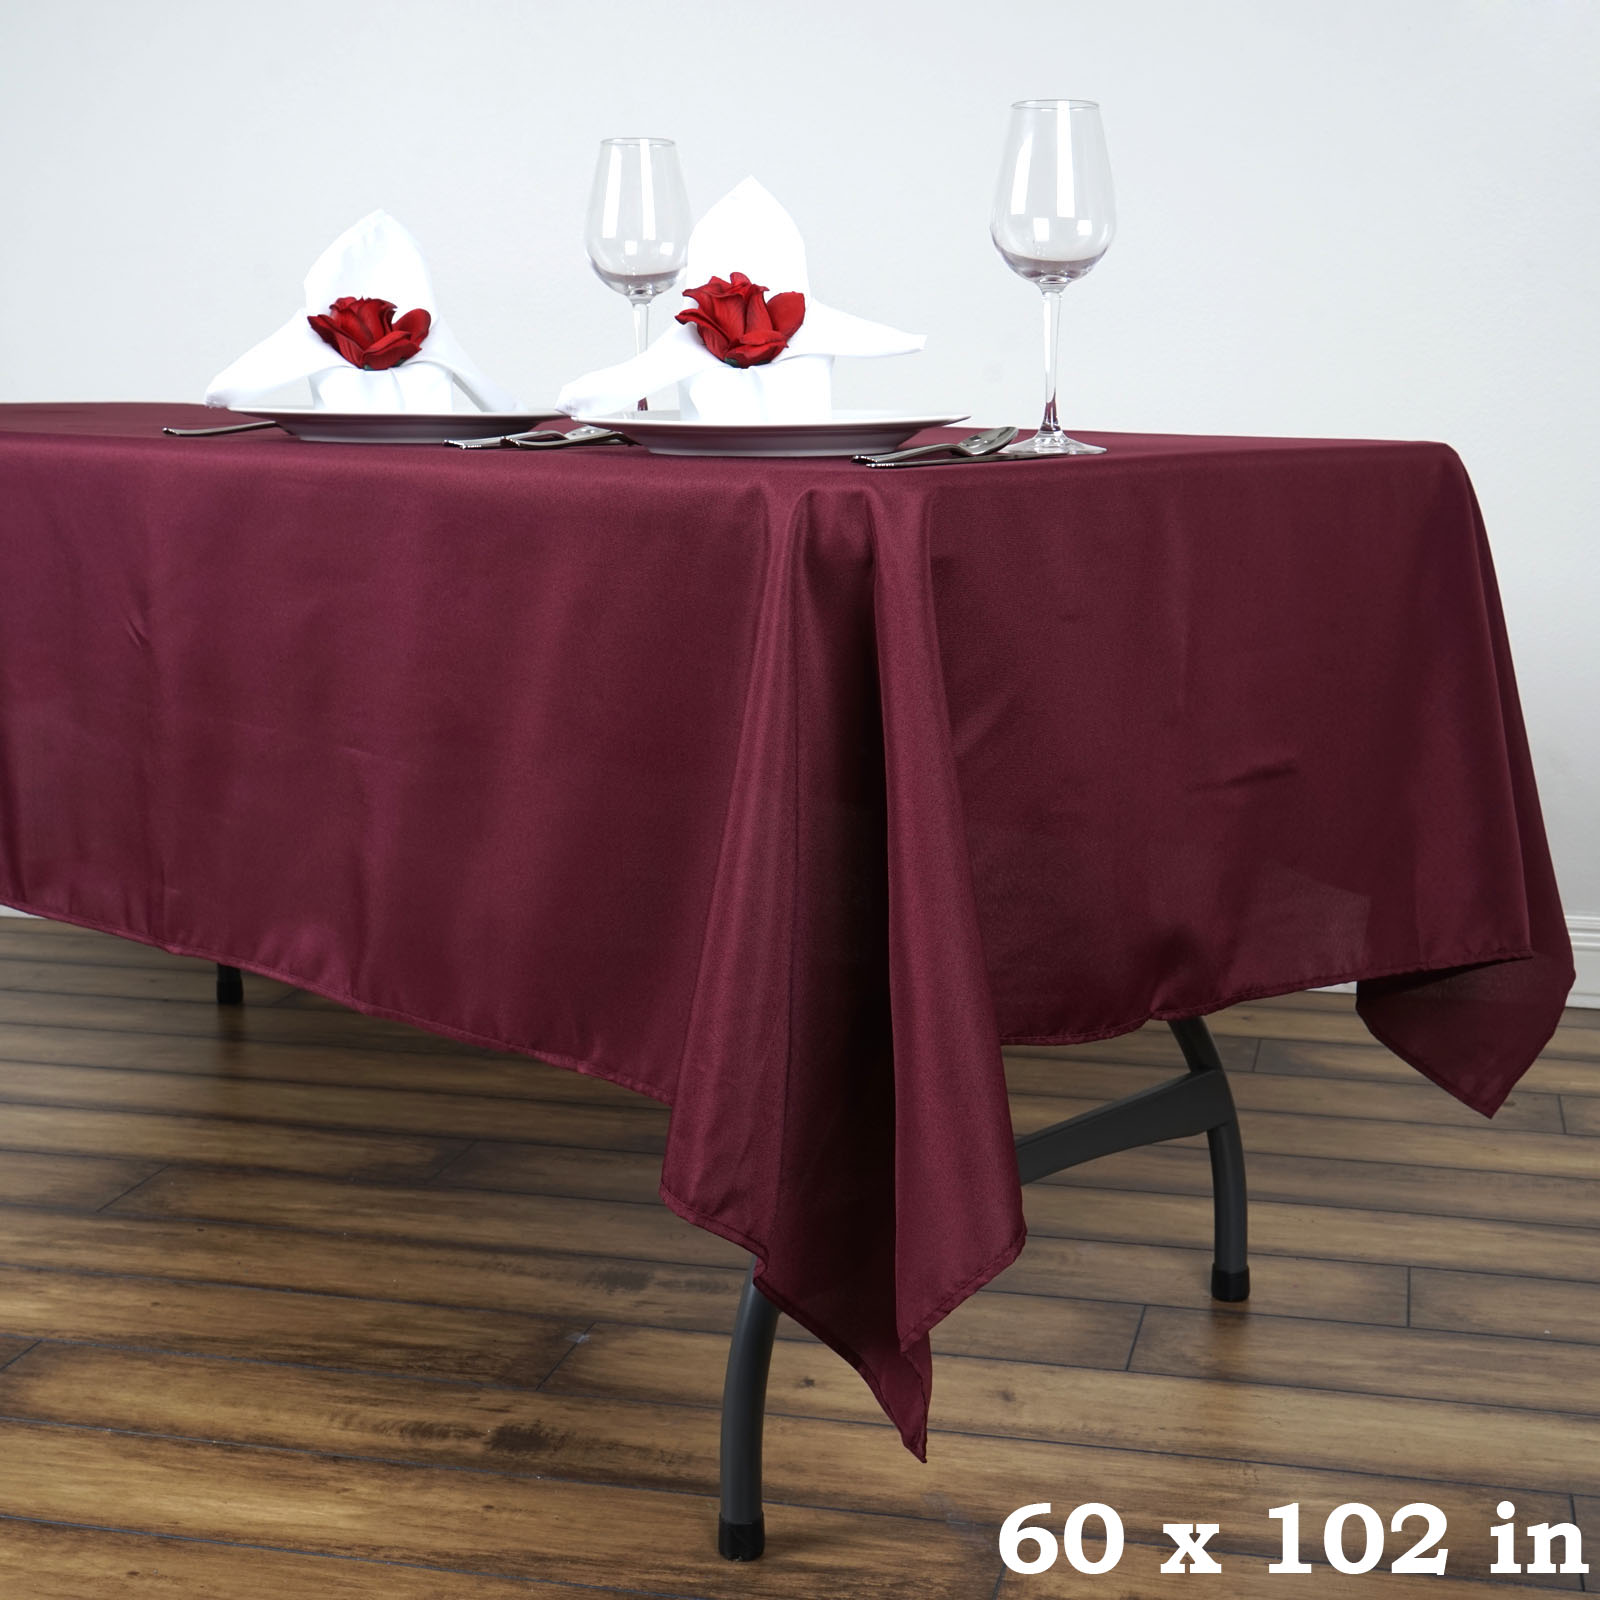 10 pcs 60 x 102 polyester rectangular tablecloths for 102 table runners